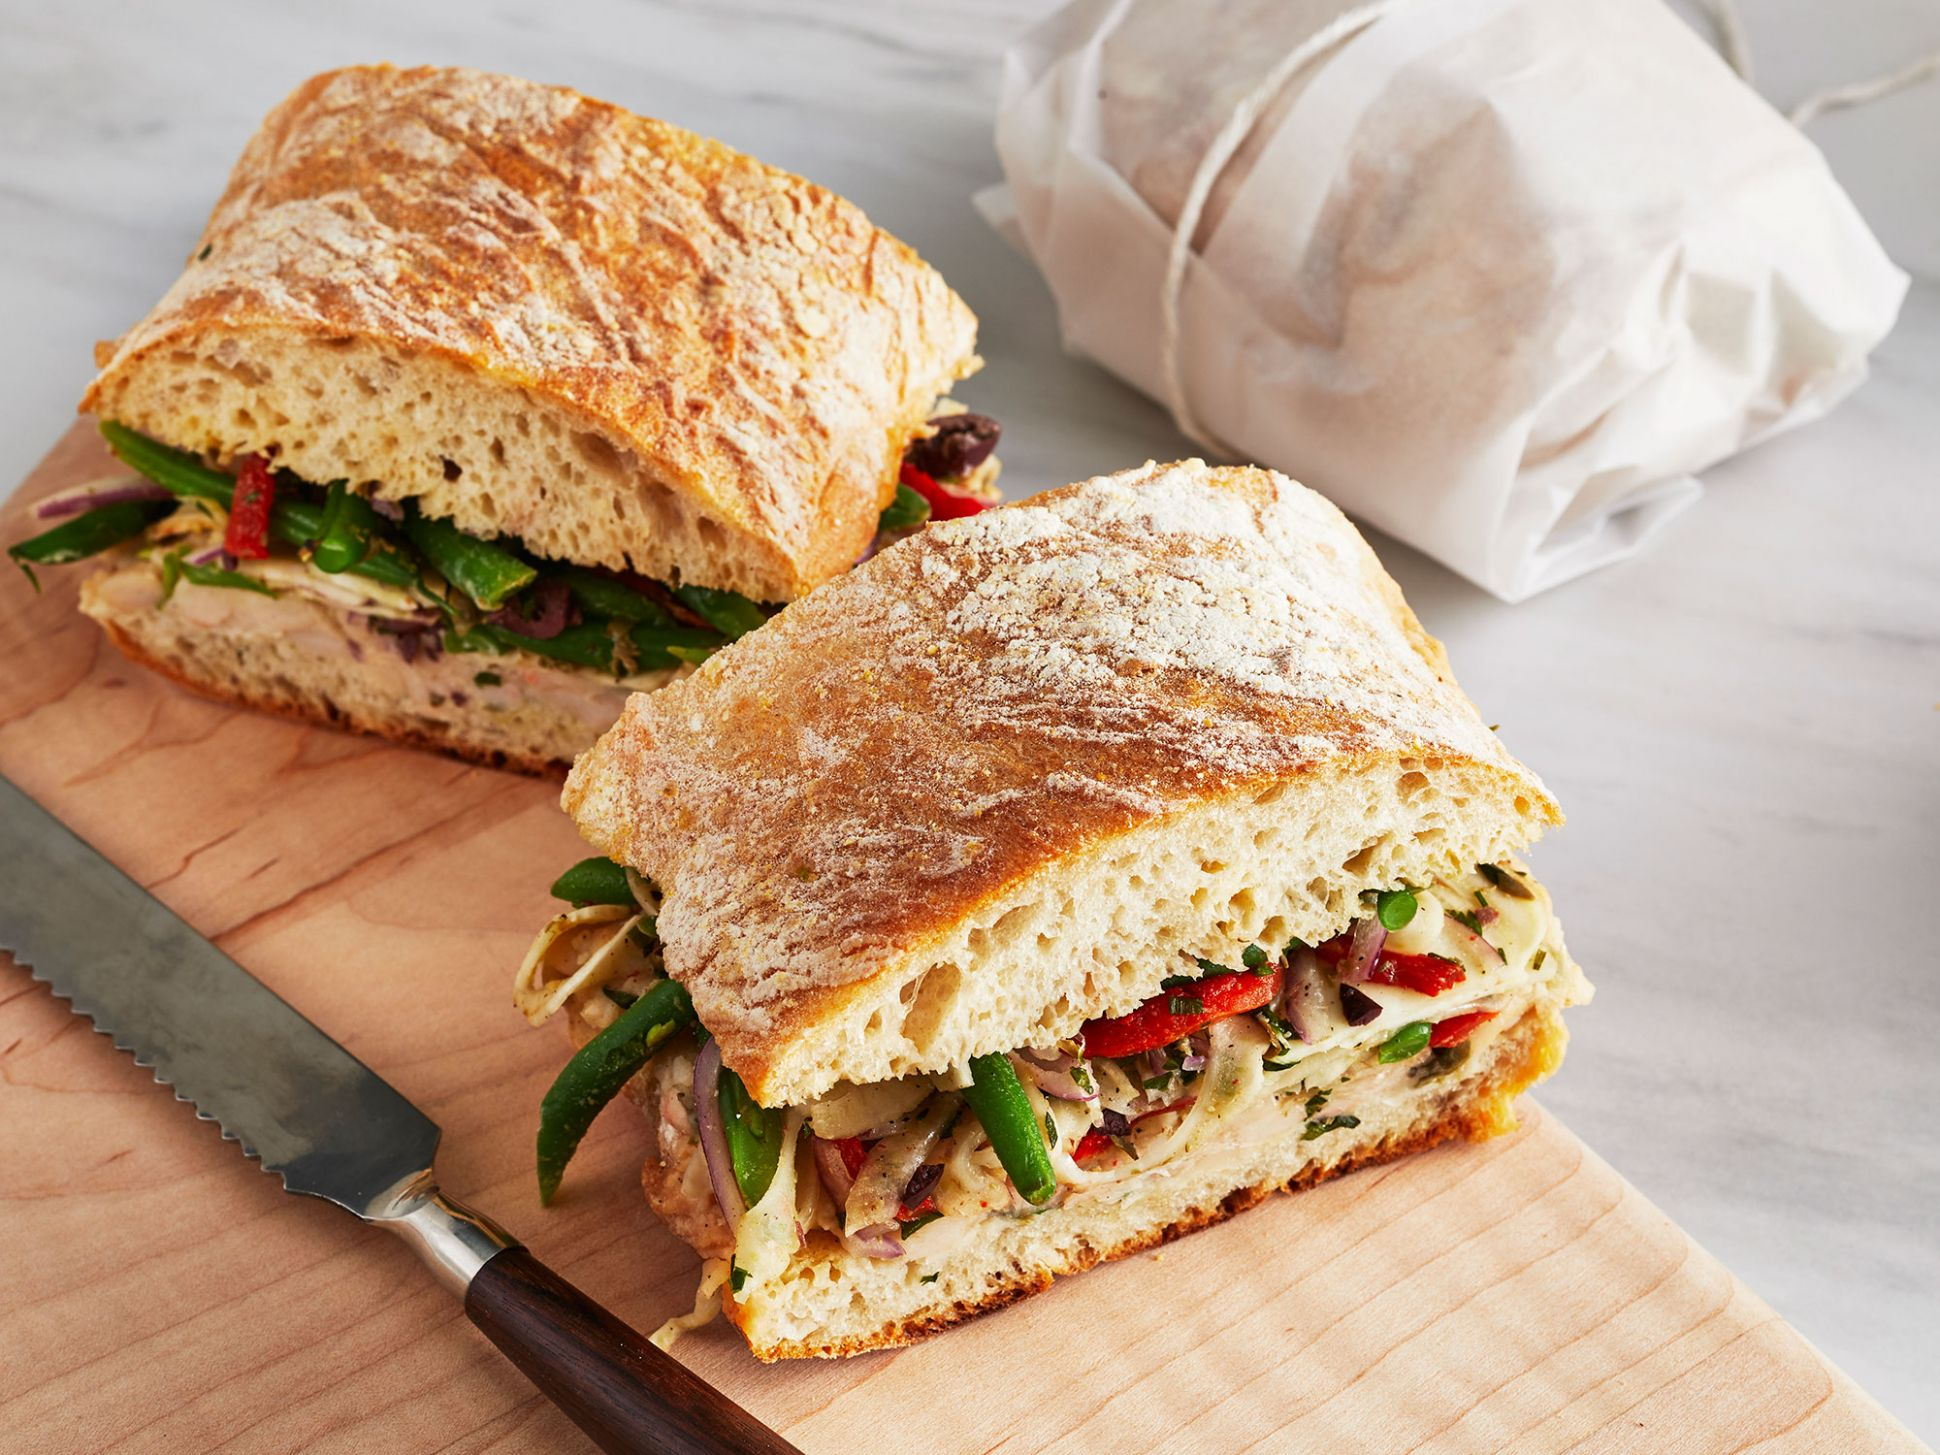 10 Healthy Sandwiches Ideas | Cooking Light